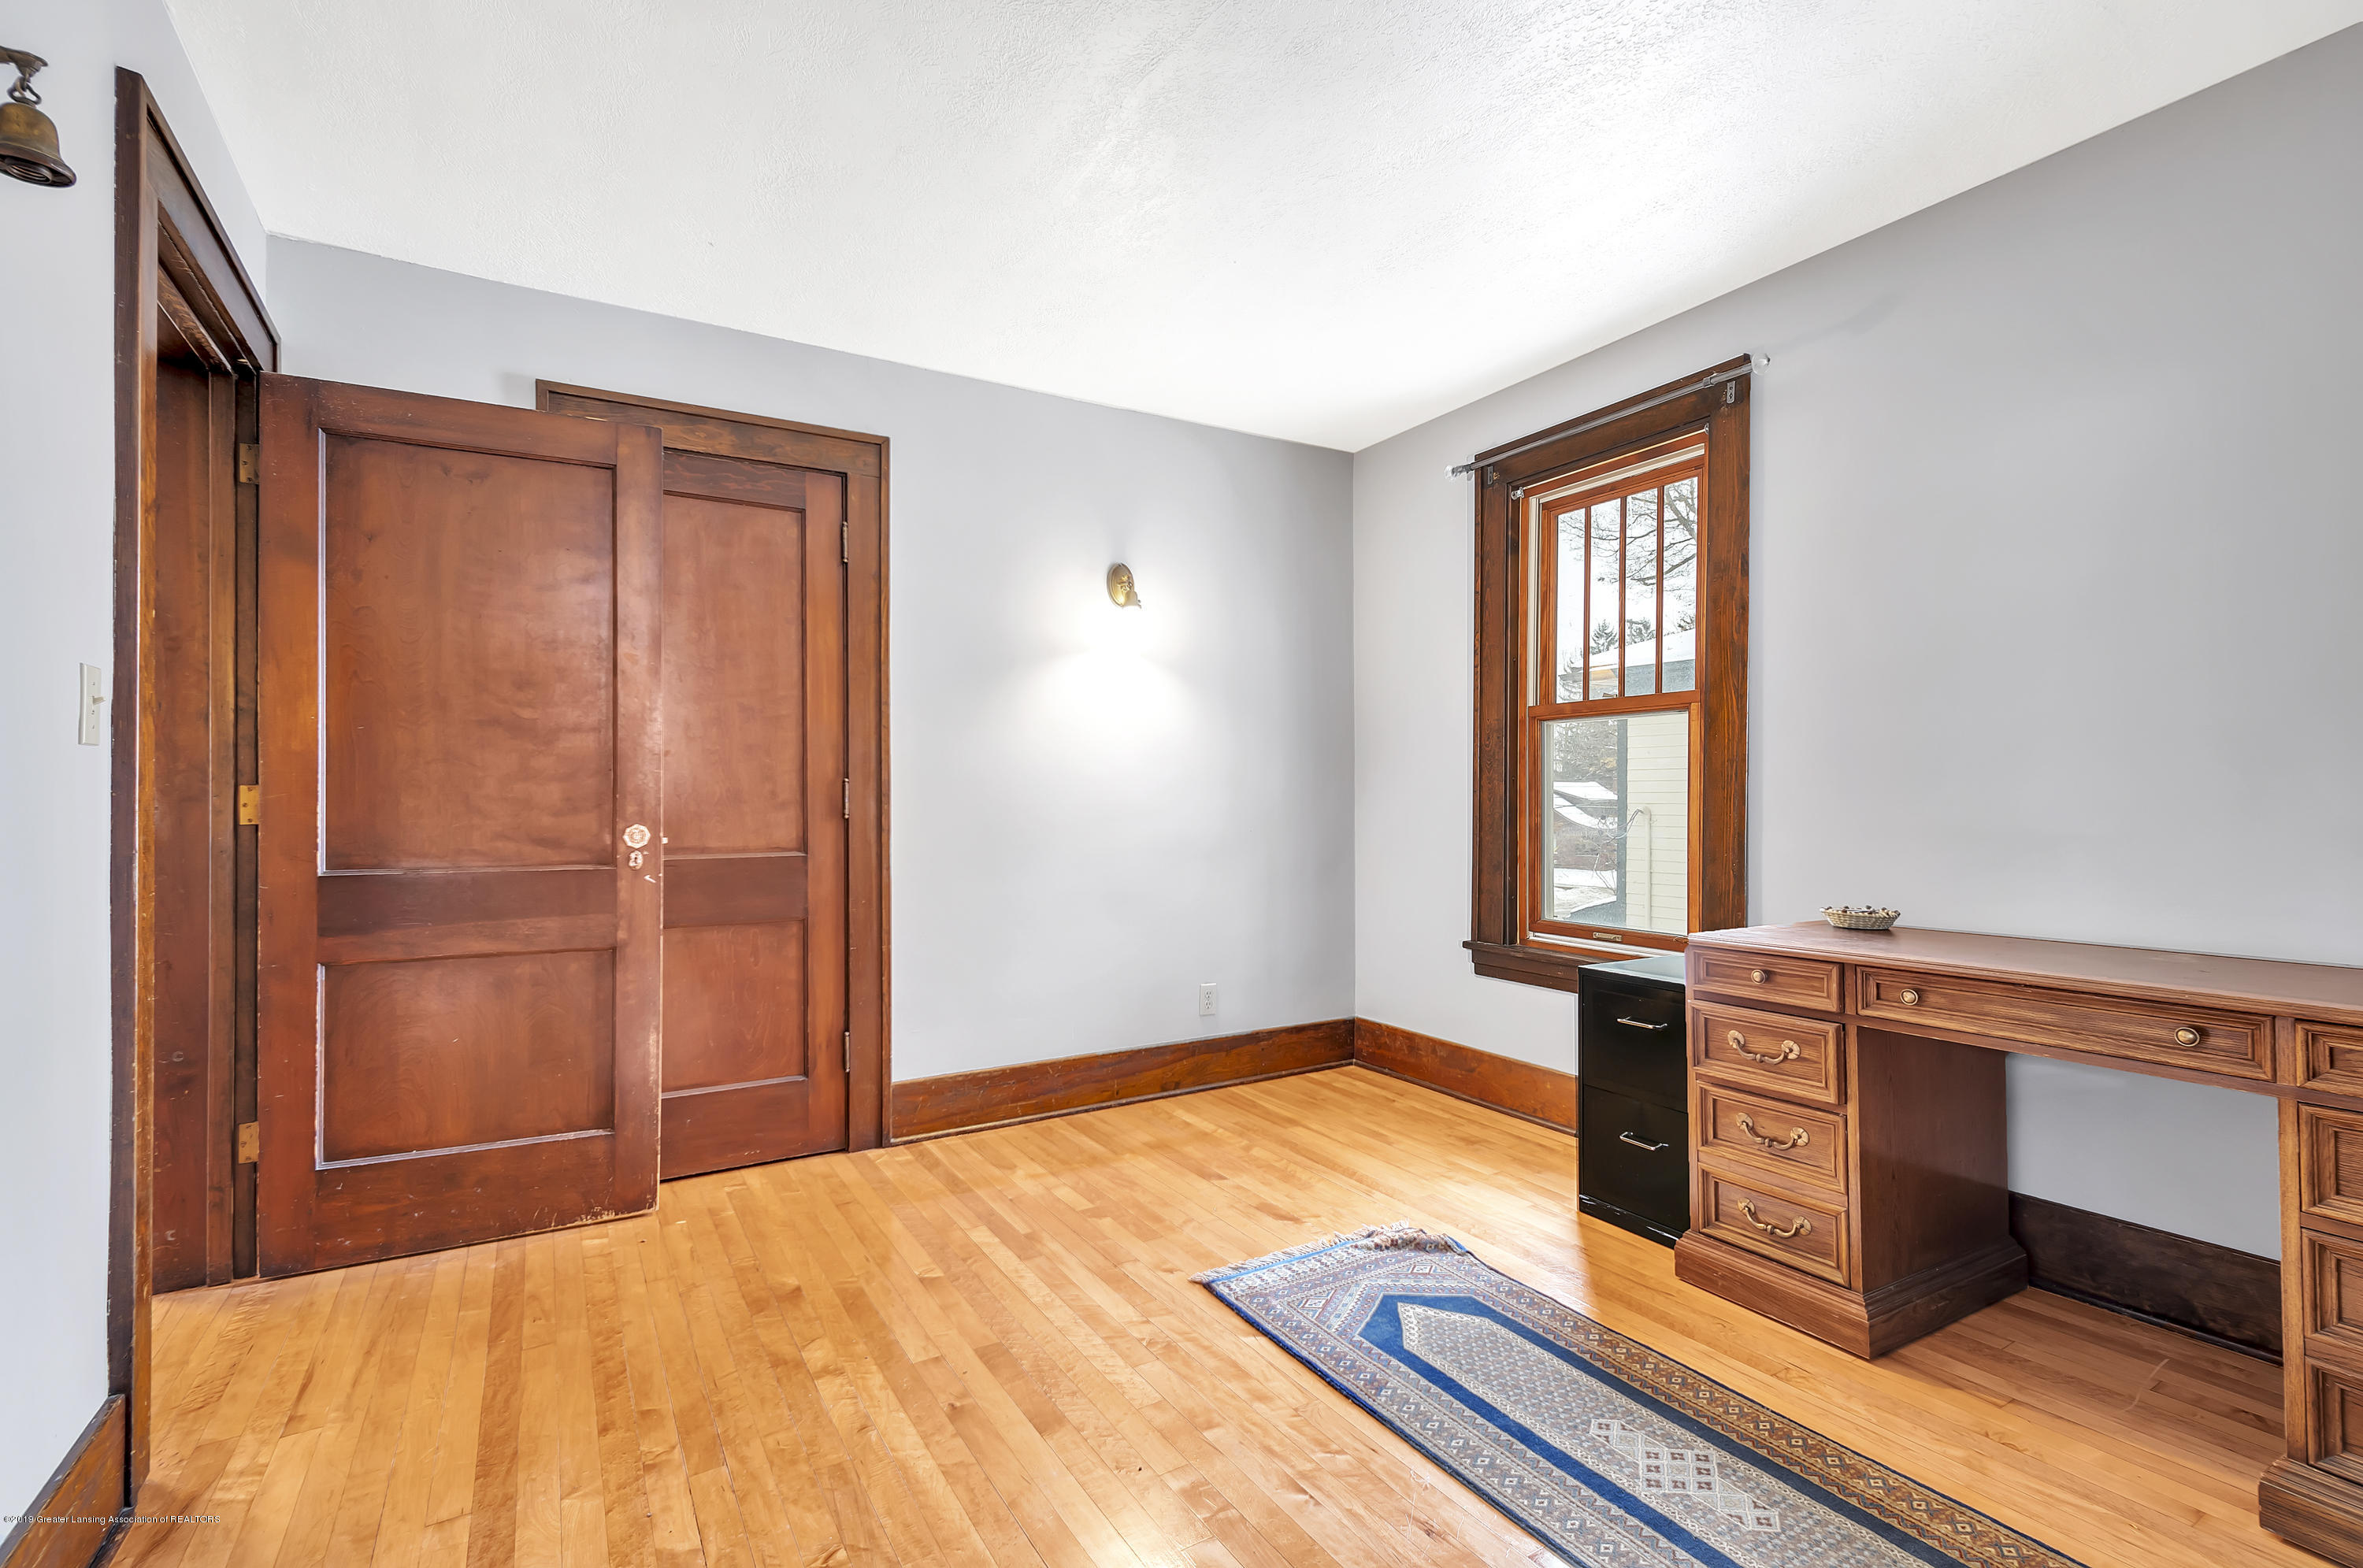 412 E Jefferson St - 412-E-Jefferson-WindowStill-Real-Estate- - 34